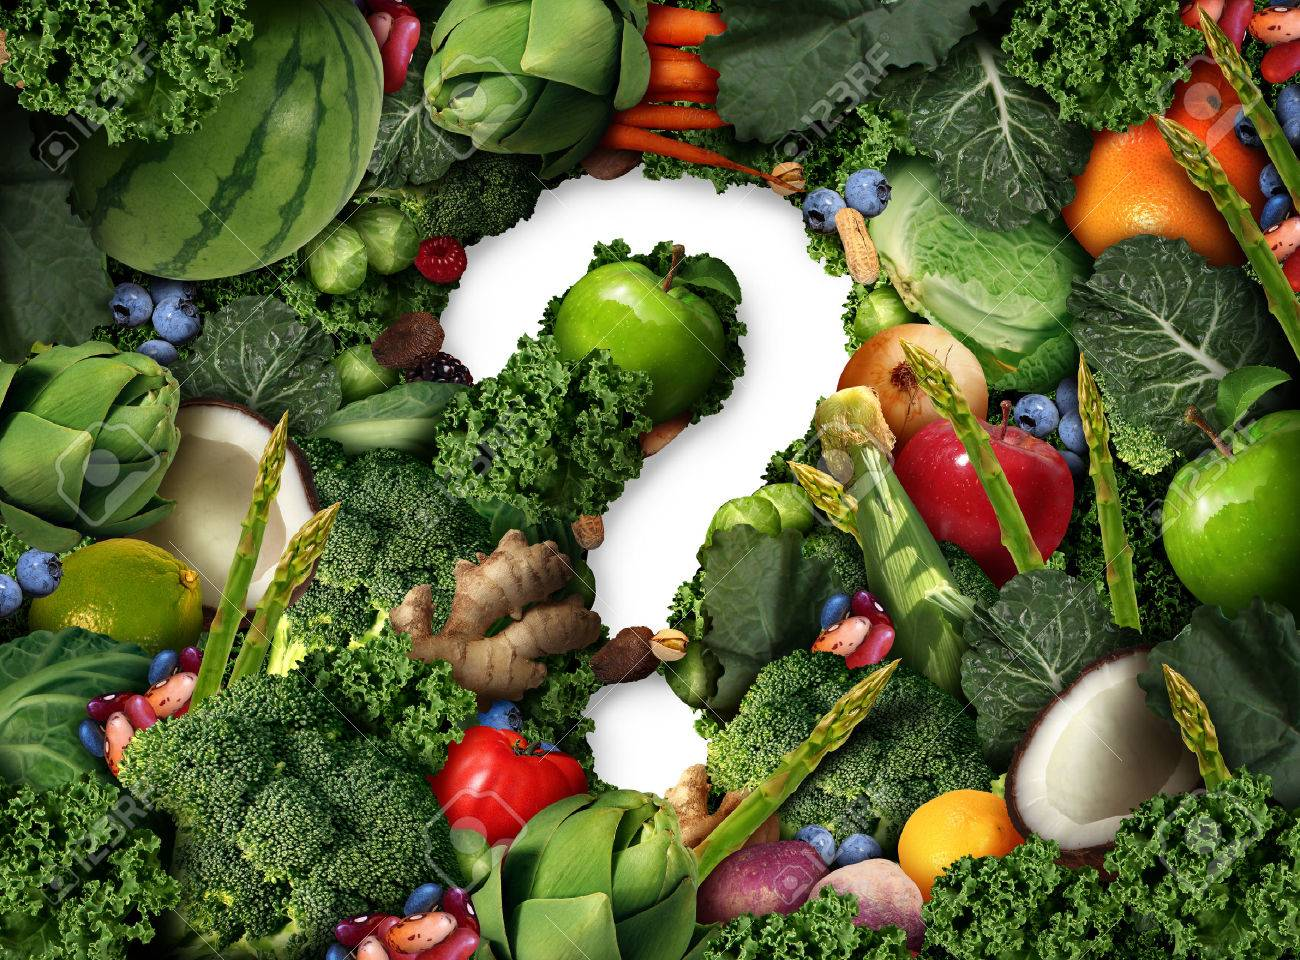 Healthy food questions as a concept for green diet as a group of fresh fruit vegetables nuts beans and berries in the shape of a question mark as a symbol of good high fiber eating and information on natural nutrition in a 3D illustration style. Standard-Bild - 63825855